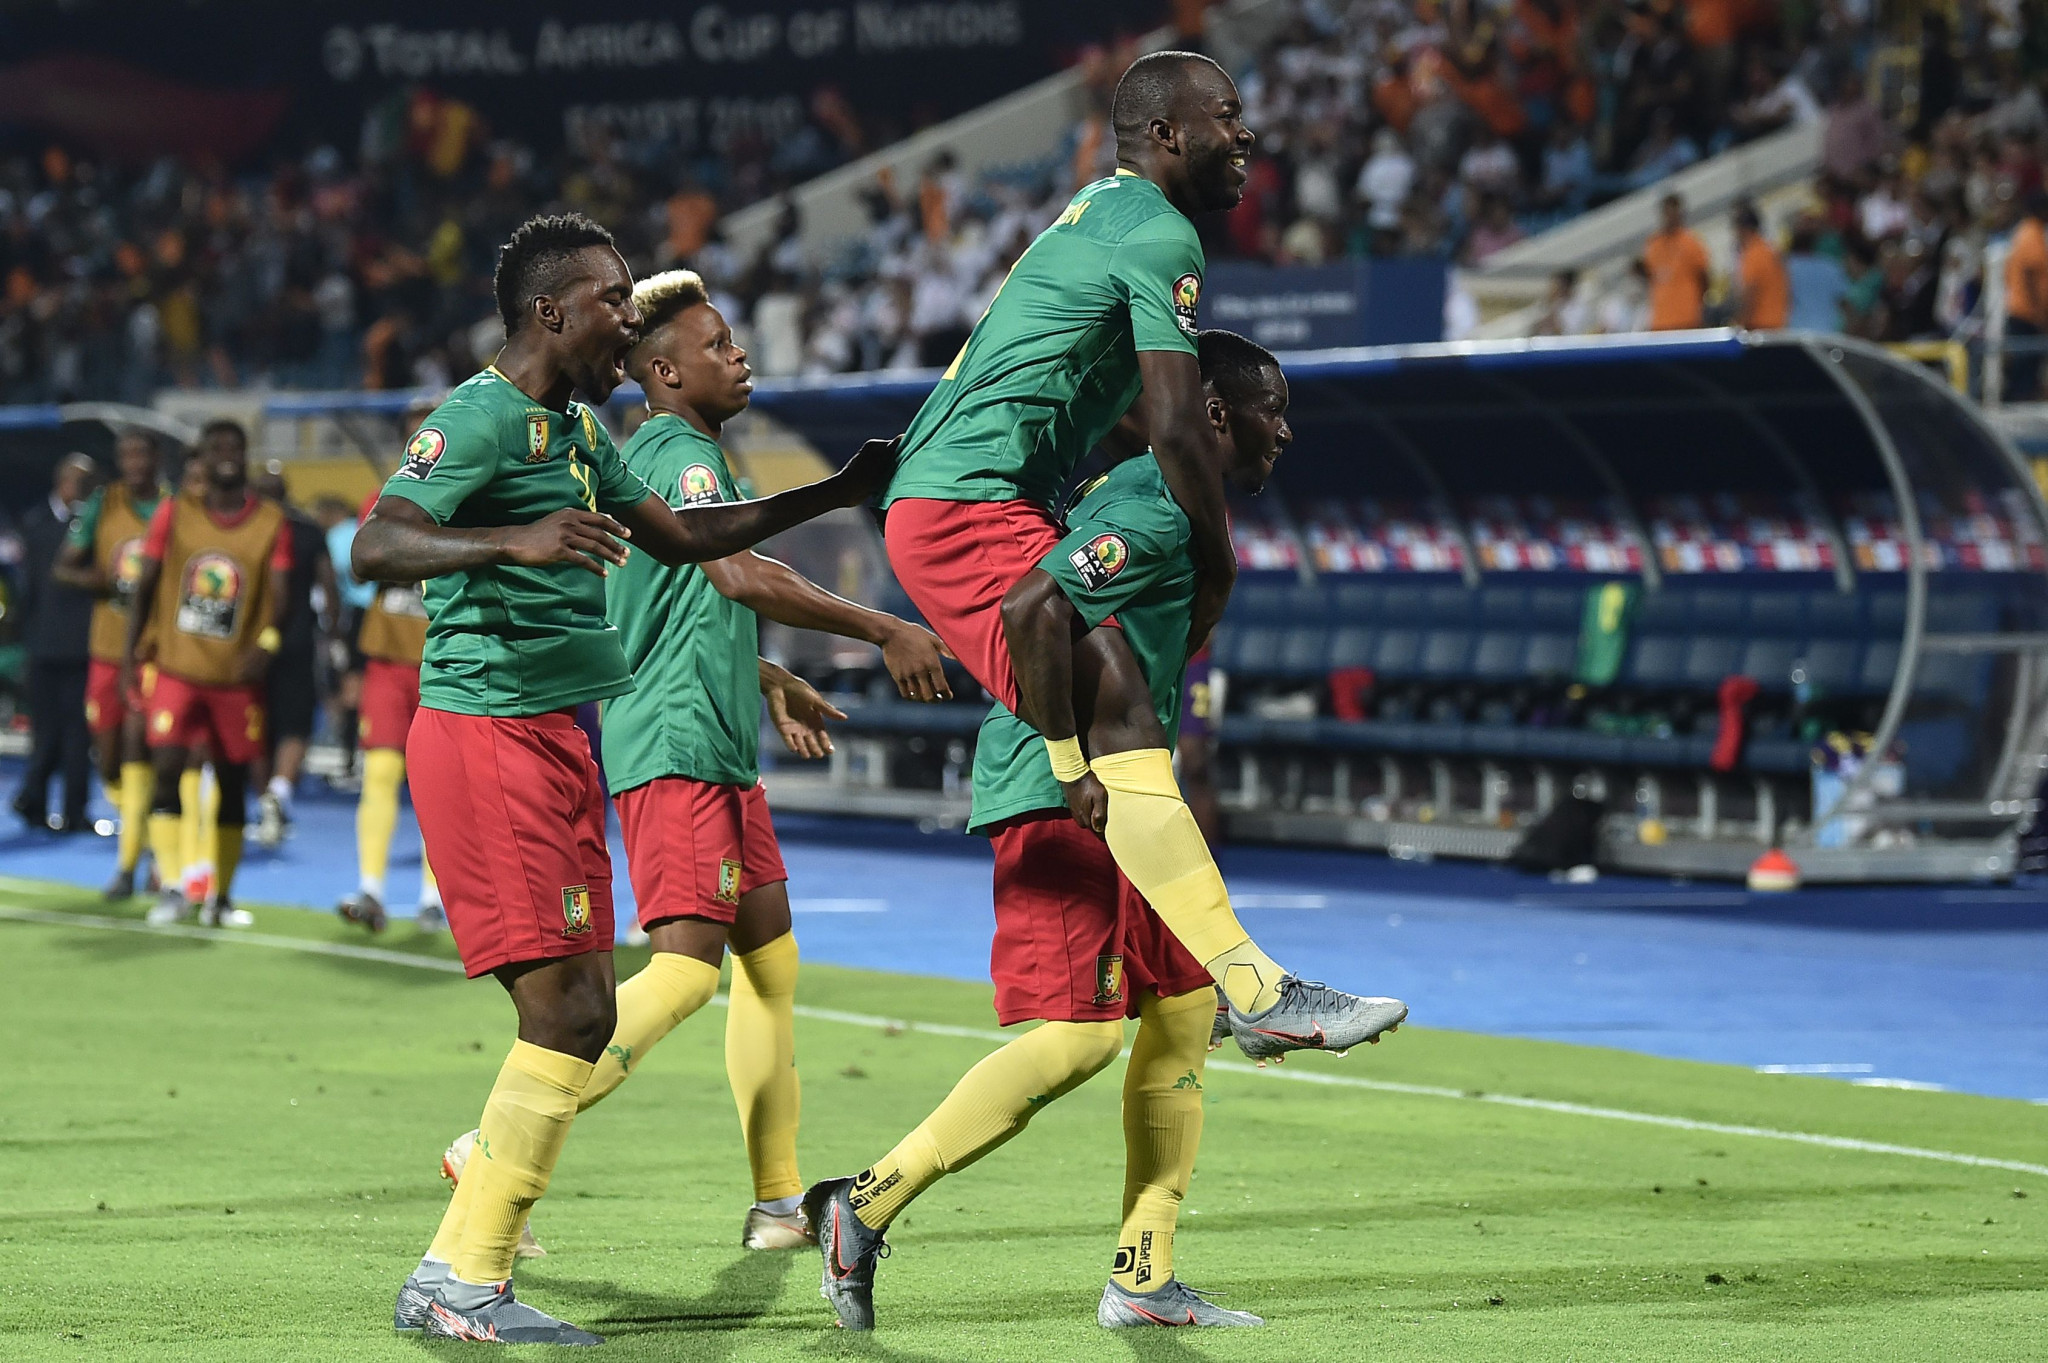 Cameroon put off-field dramas aside to claim opening Africa Cup of Nations victory